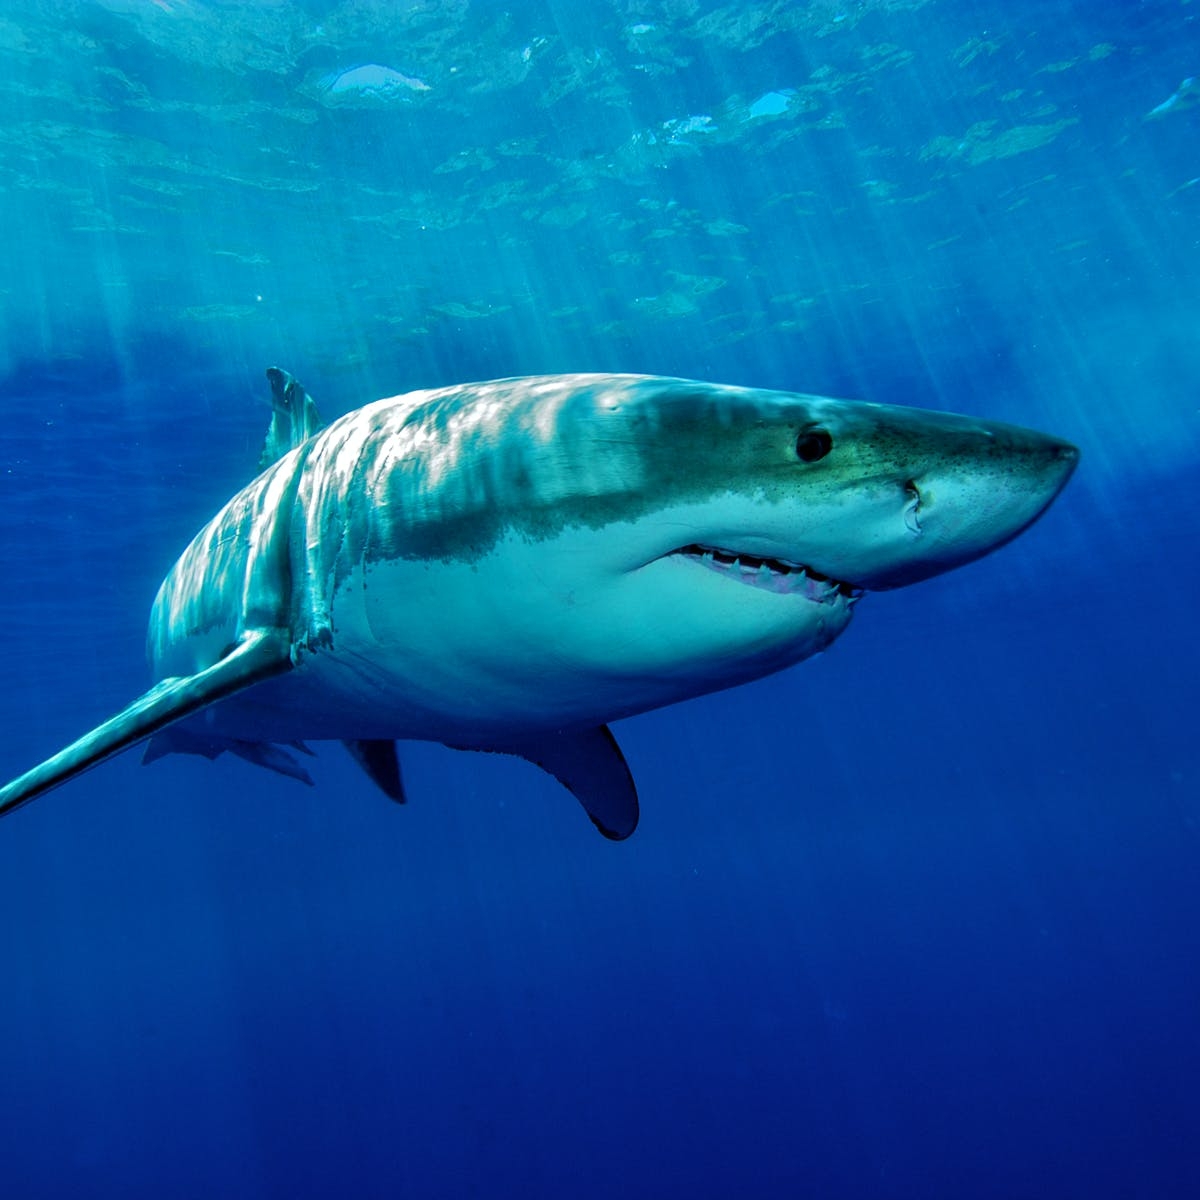 Sharks proximity and volcanic activity pending confirmation